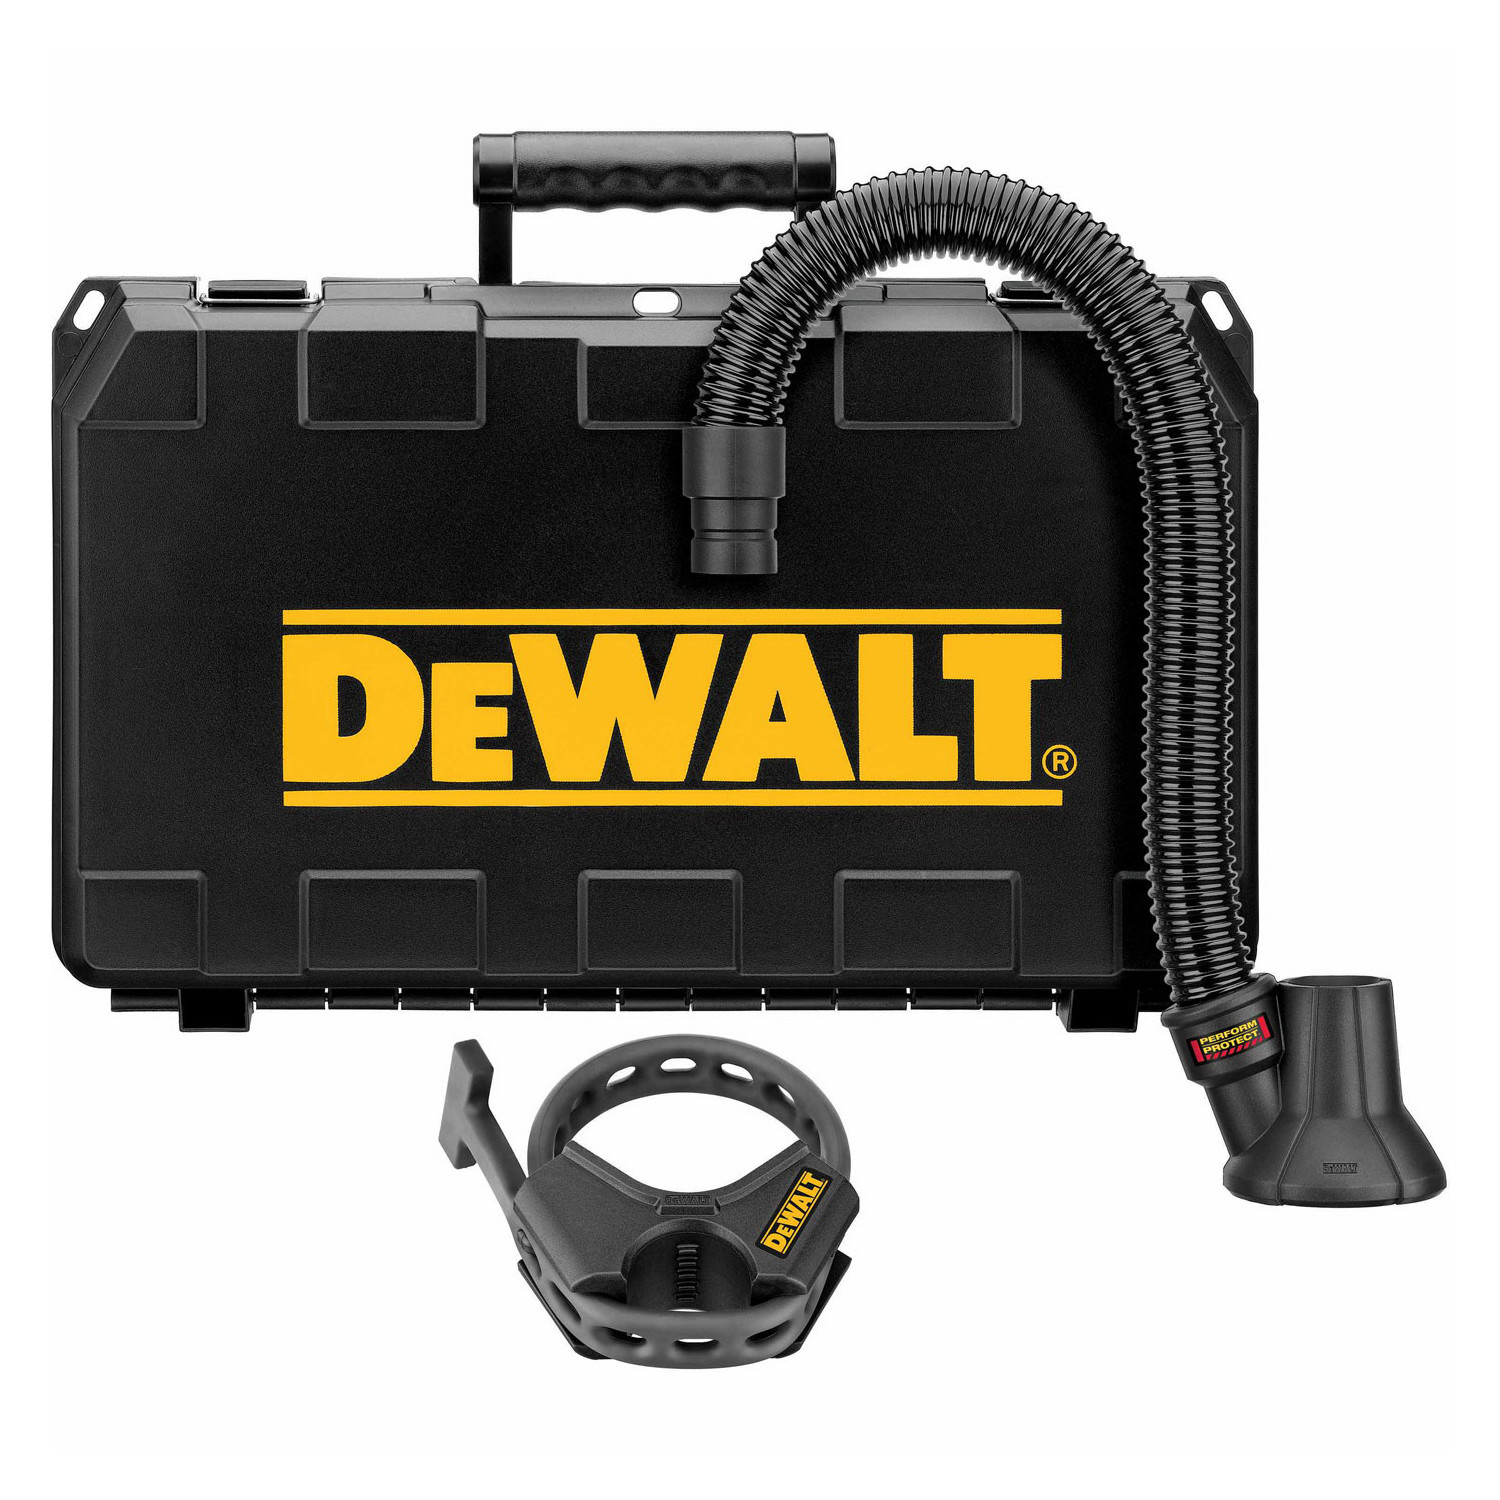 Dewalt Dust Extractor >> Dewalt Dwh052k Dust Extractor 1 1 4 In Hose Dia For Use With D25980 And D25960 Demo Hammers Black